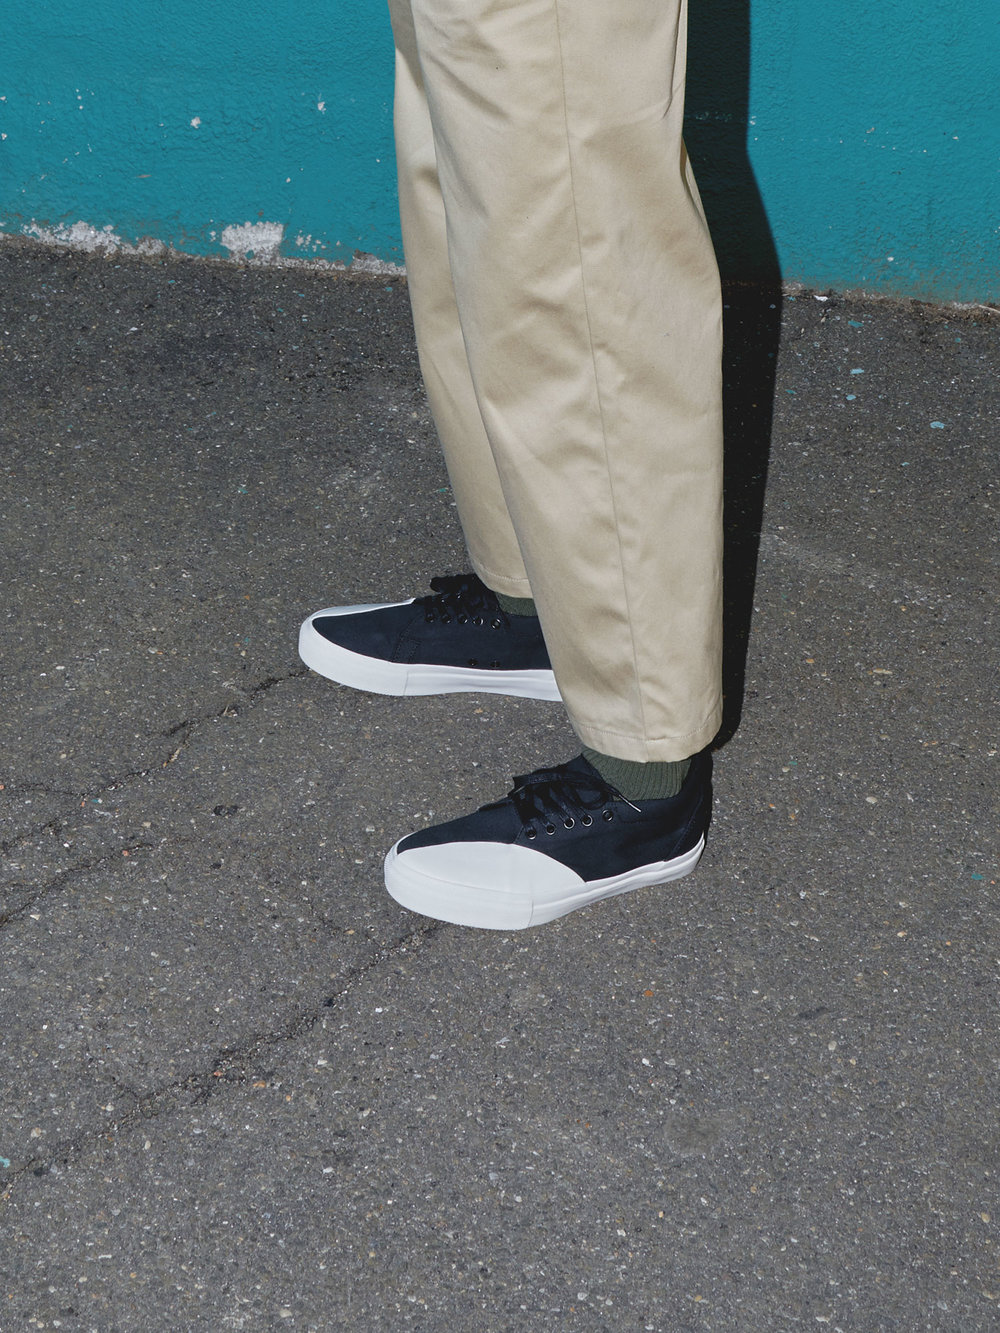 One DNA Pant in Khaki, Detail